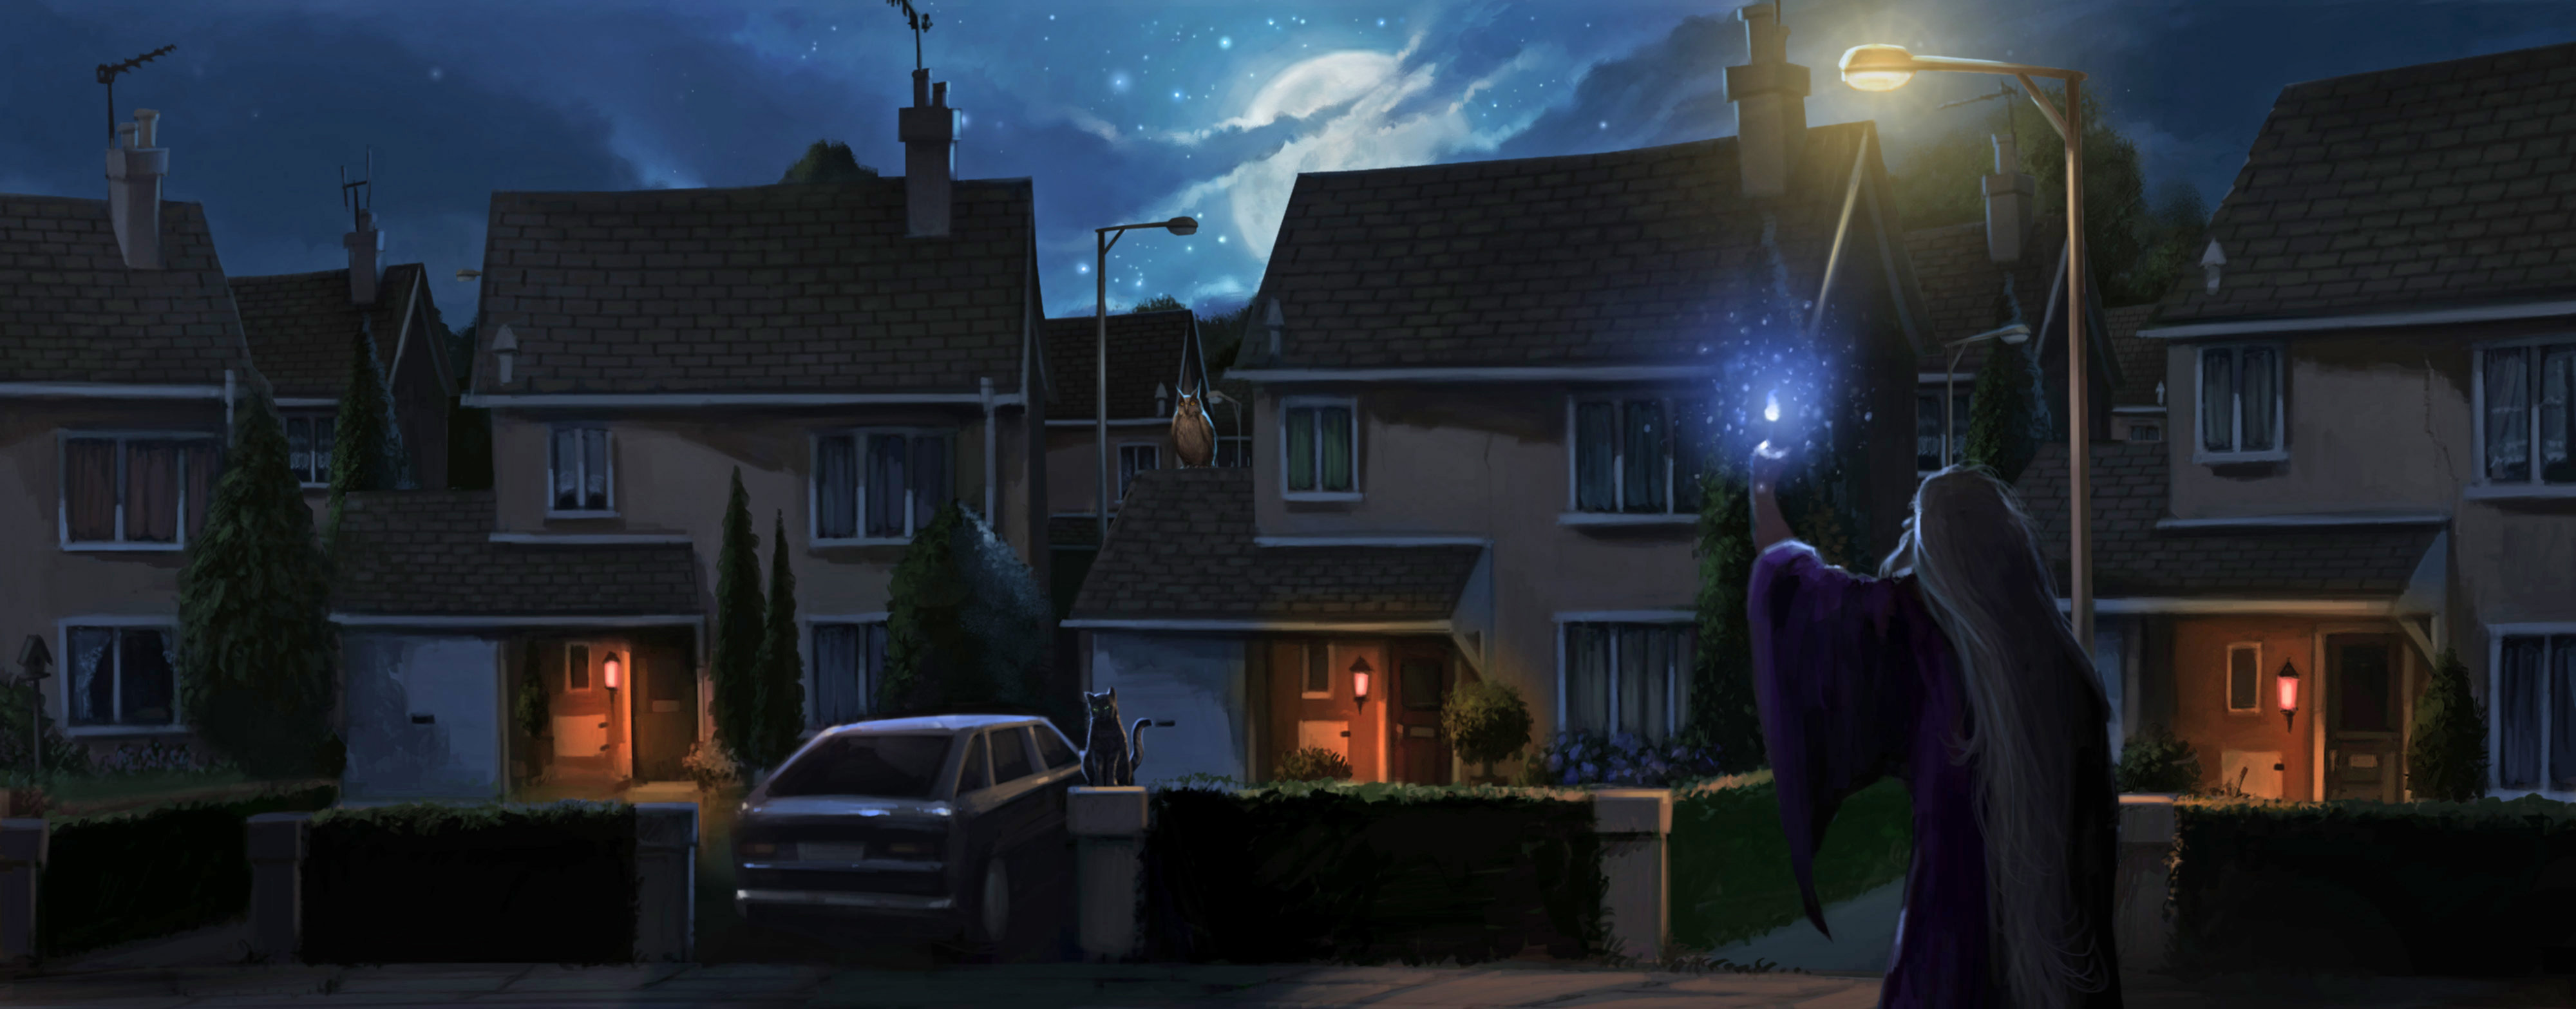 Dumbledore uses the Deluminator outside the Dursley's house.